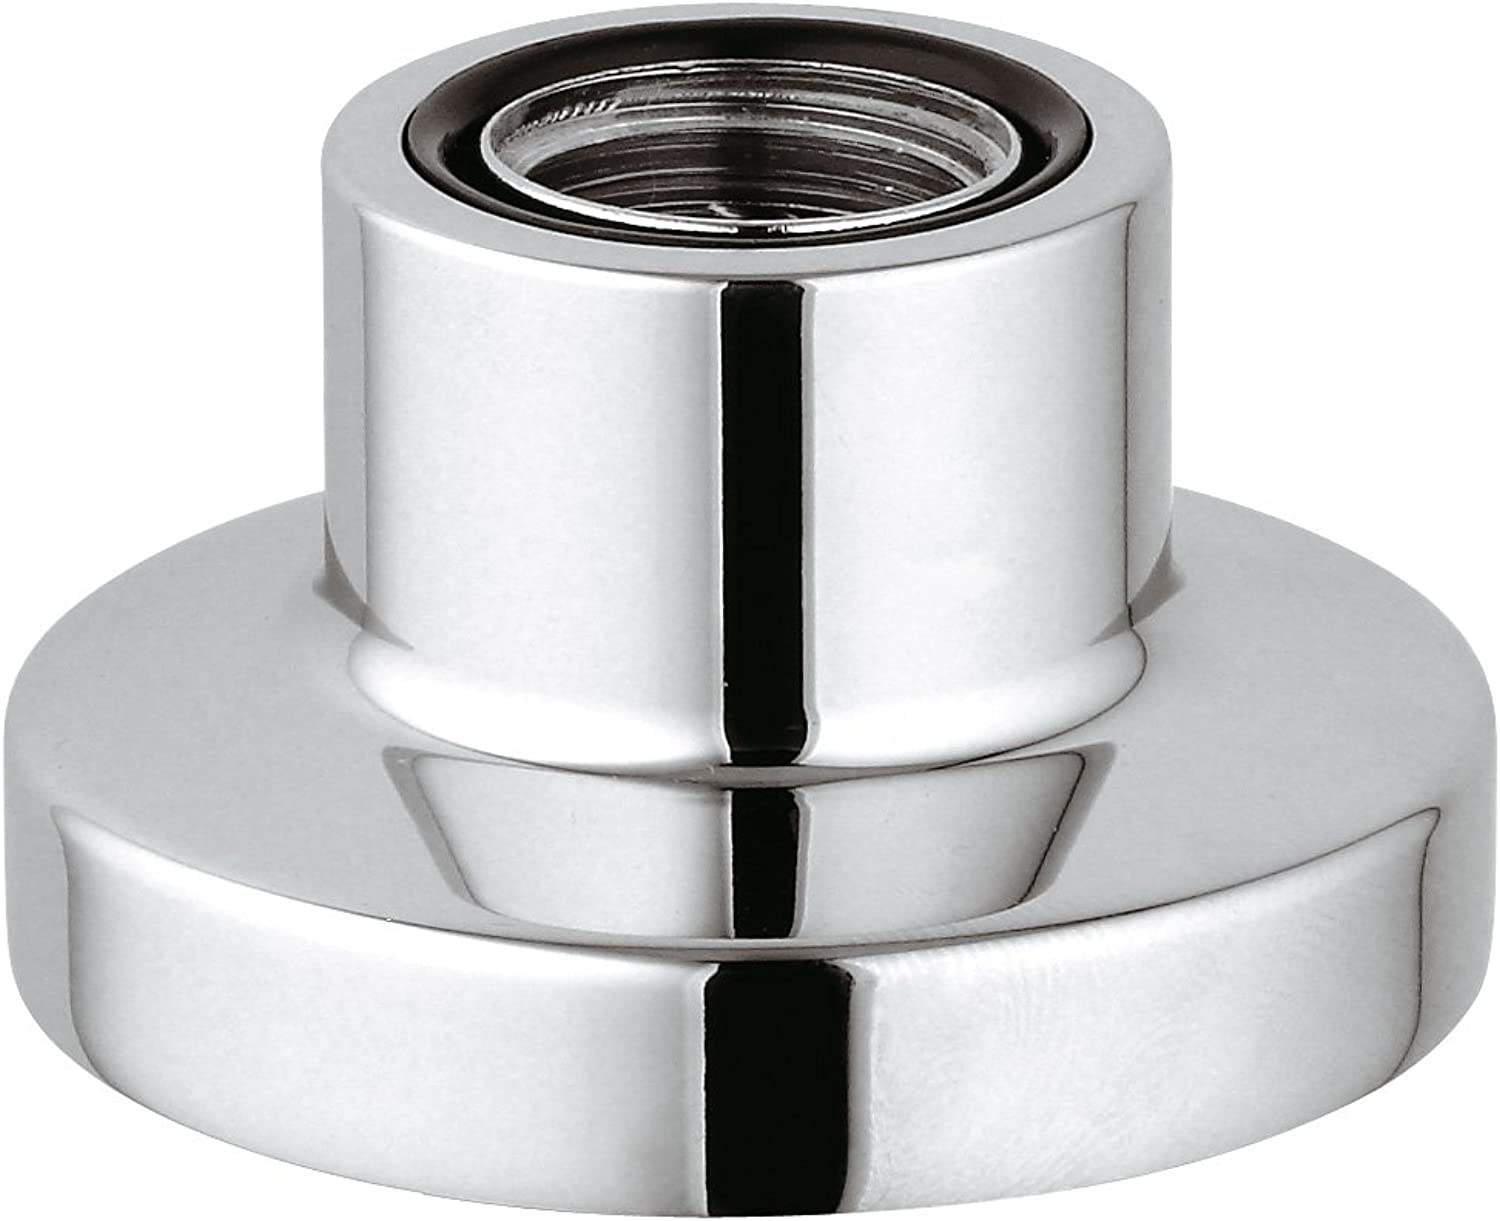 GROHE 27151000 Feed Bush for Pull-Out Hand Showers - chrome